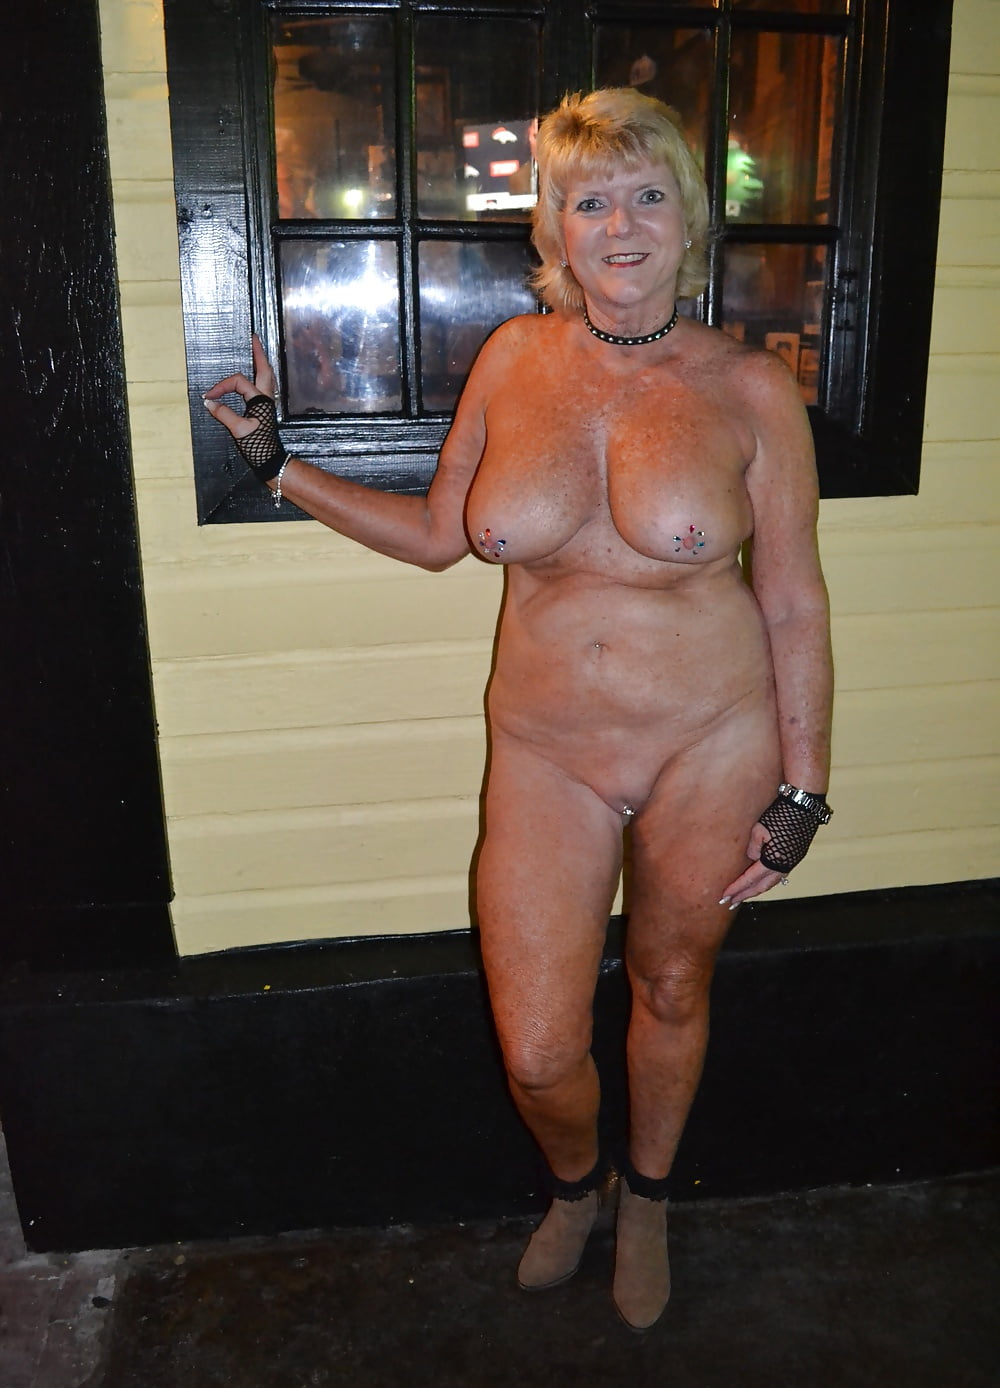 Sexy grannies porn carnival, tila tequila naked pics for free